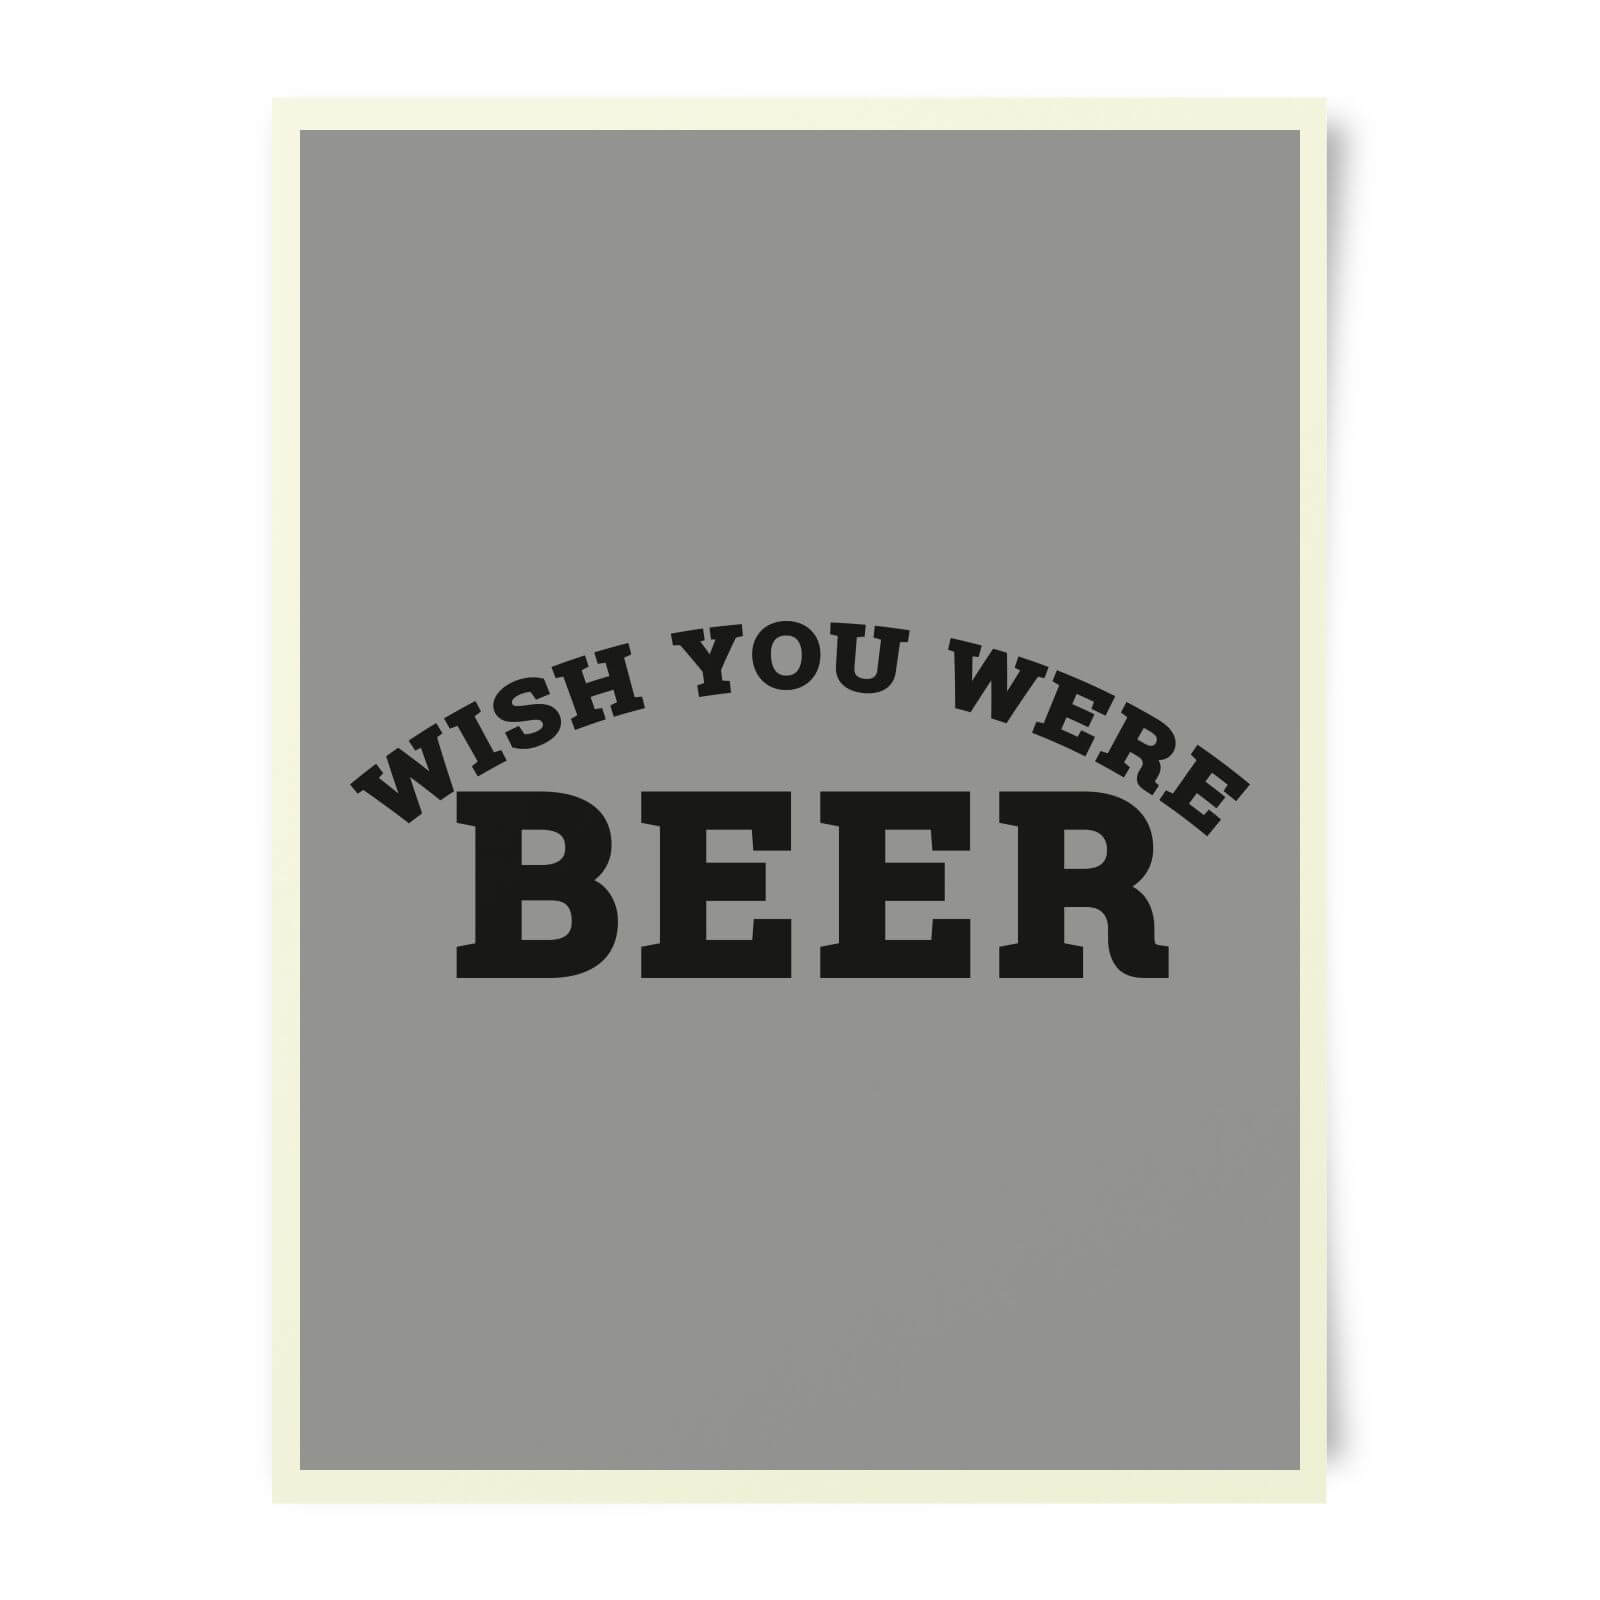 Beershield Wish You Were Beer Art Print